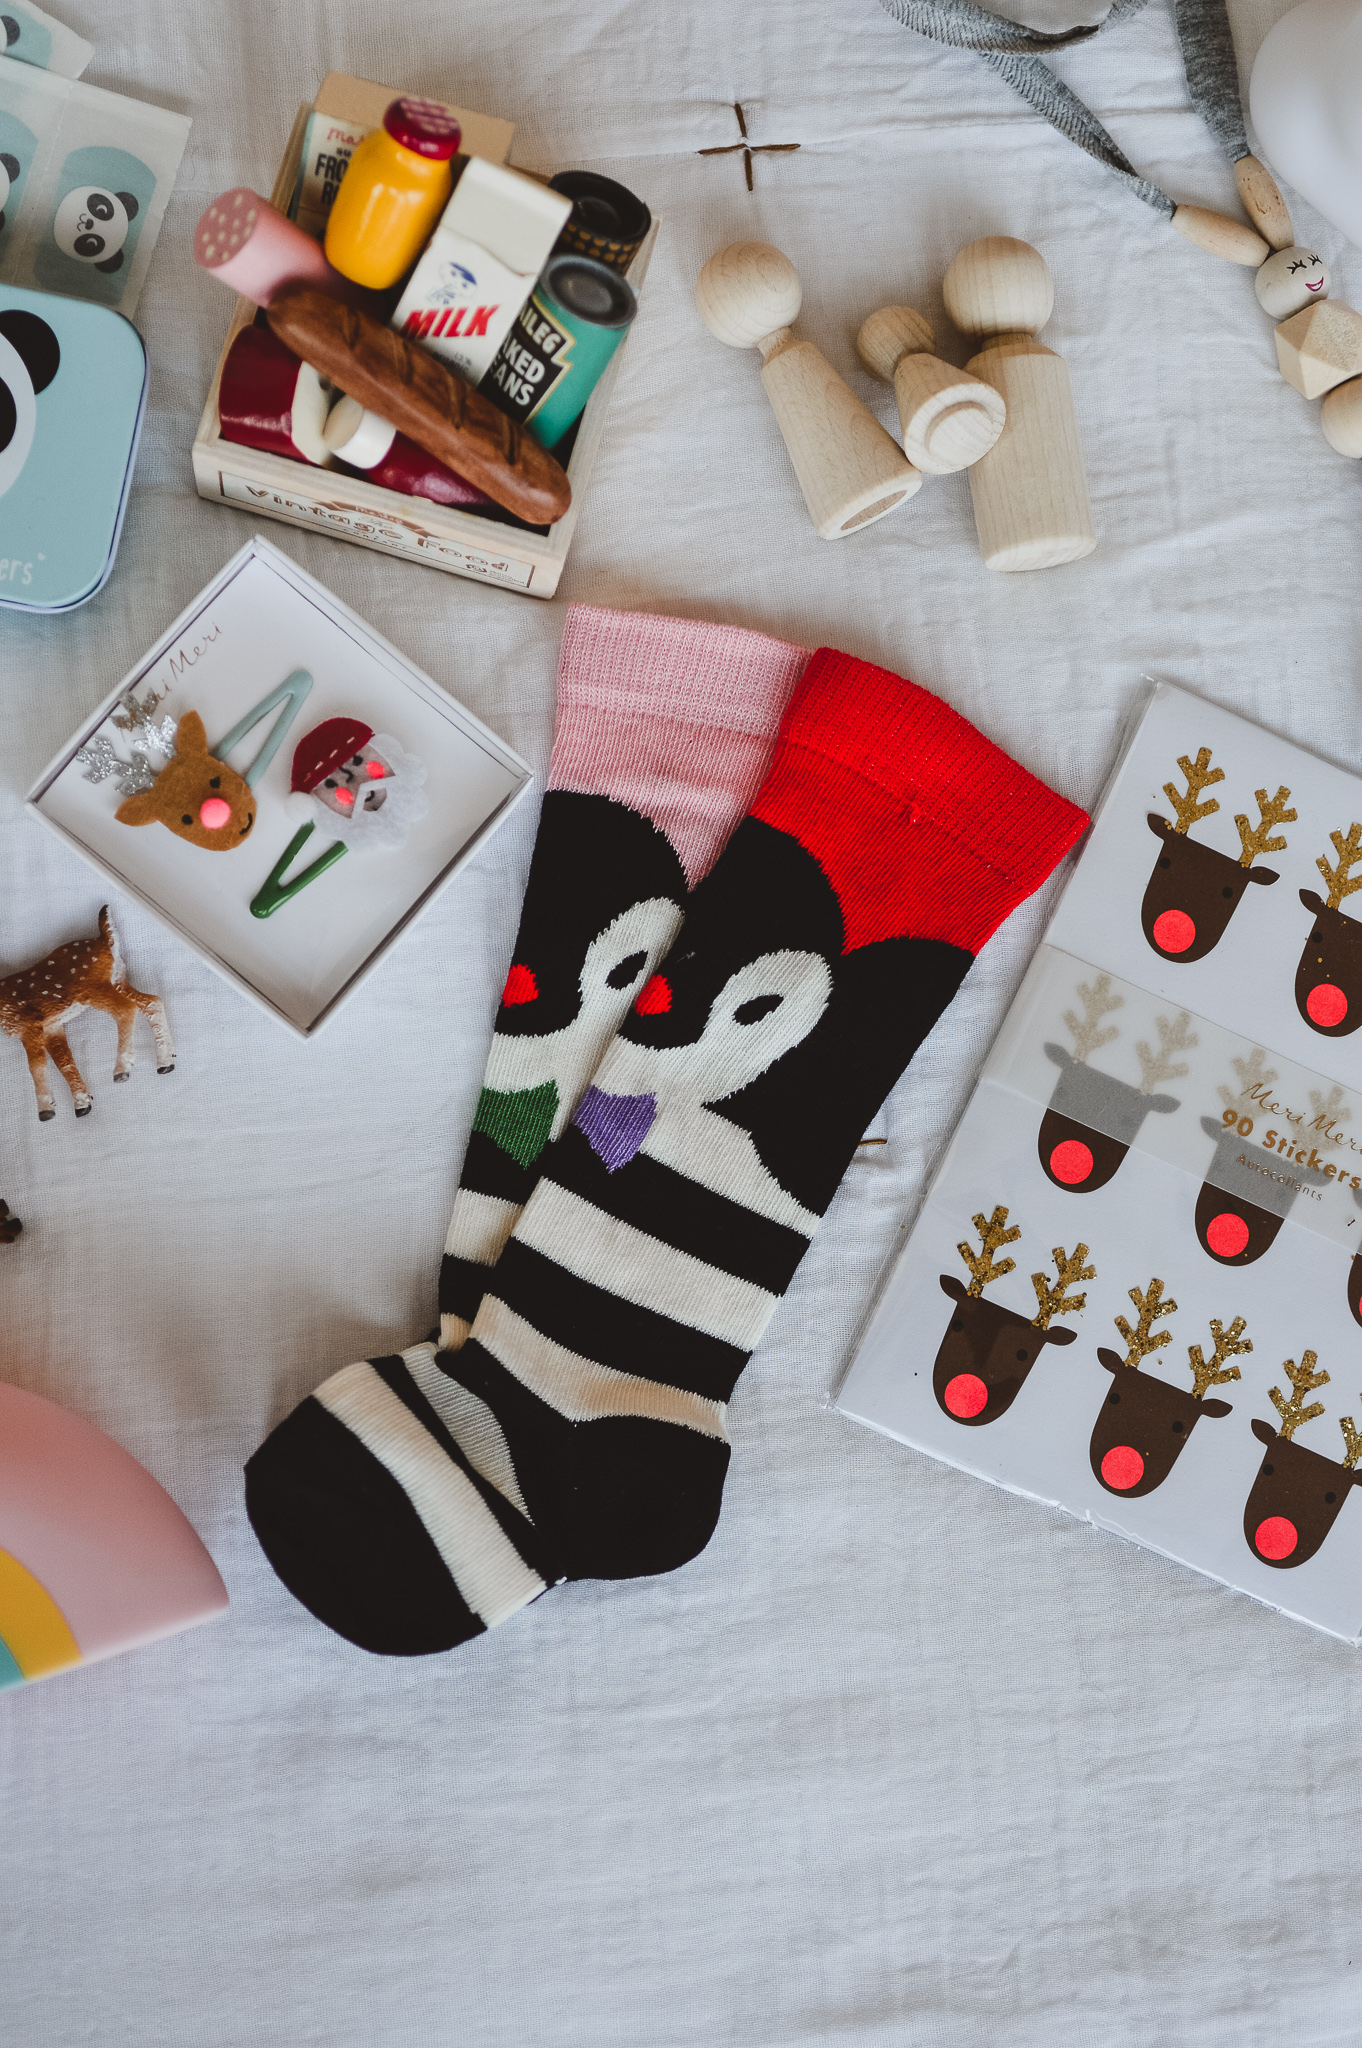 24 Ideen für den Adventskalender // 24 stocking stuffer ideas